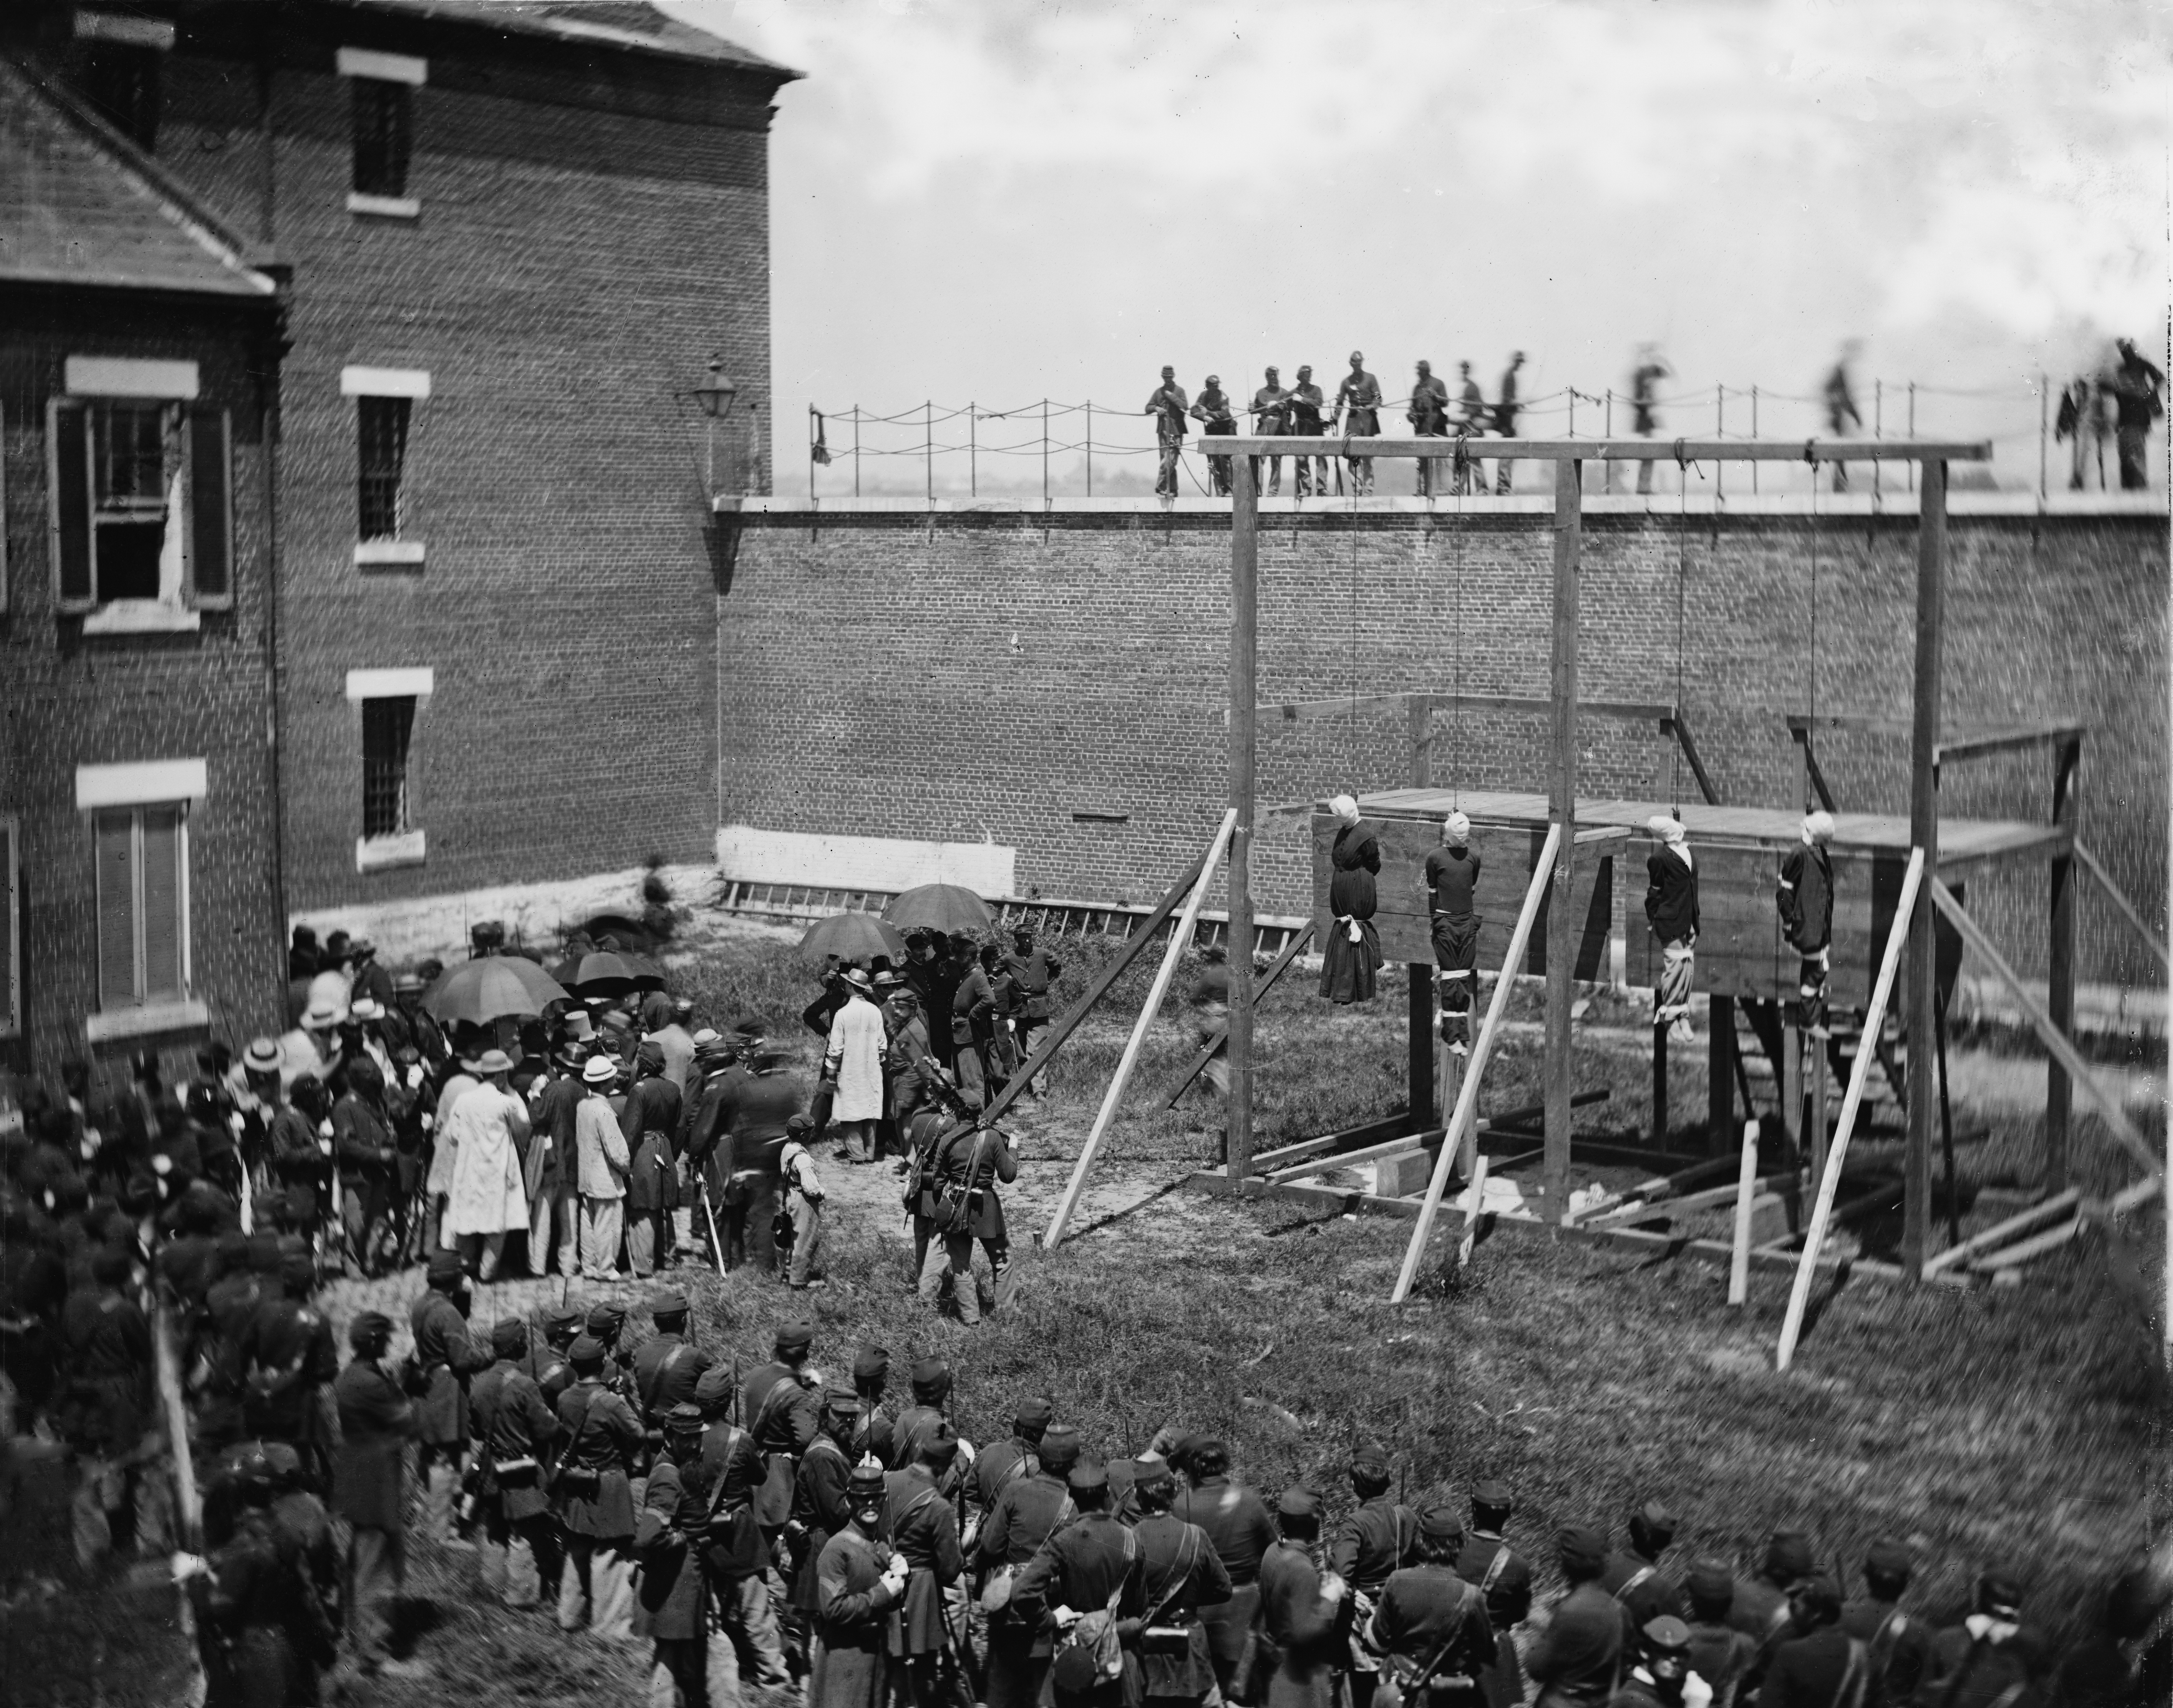 Execution of Mary Surratt, Lewis Powell, David Herold, and George Atzerodt on July 7, 1865, at Fort McNair in Washington City